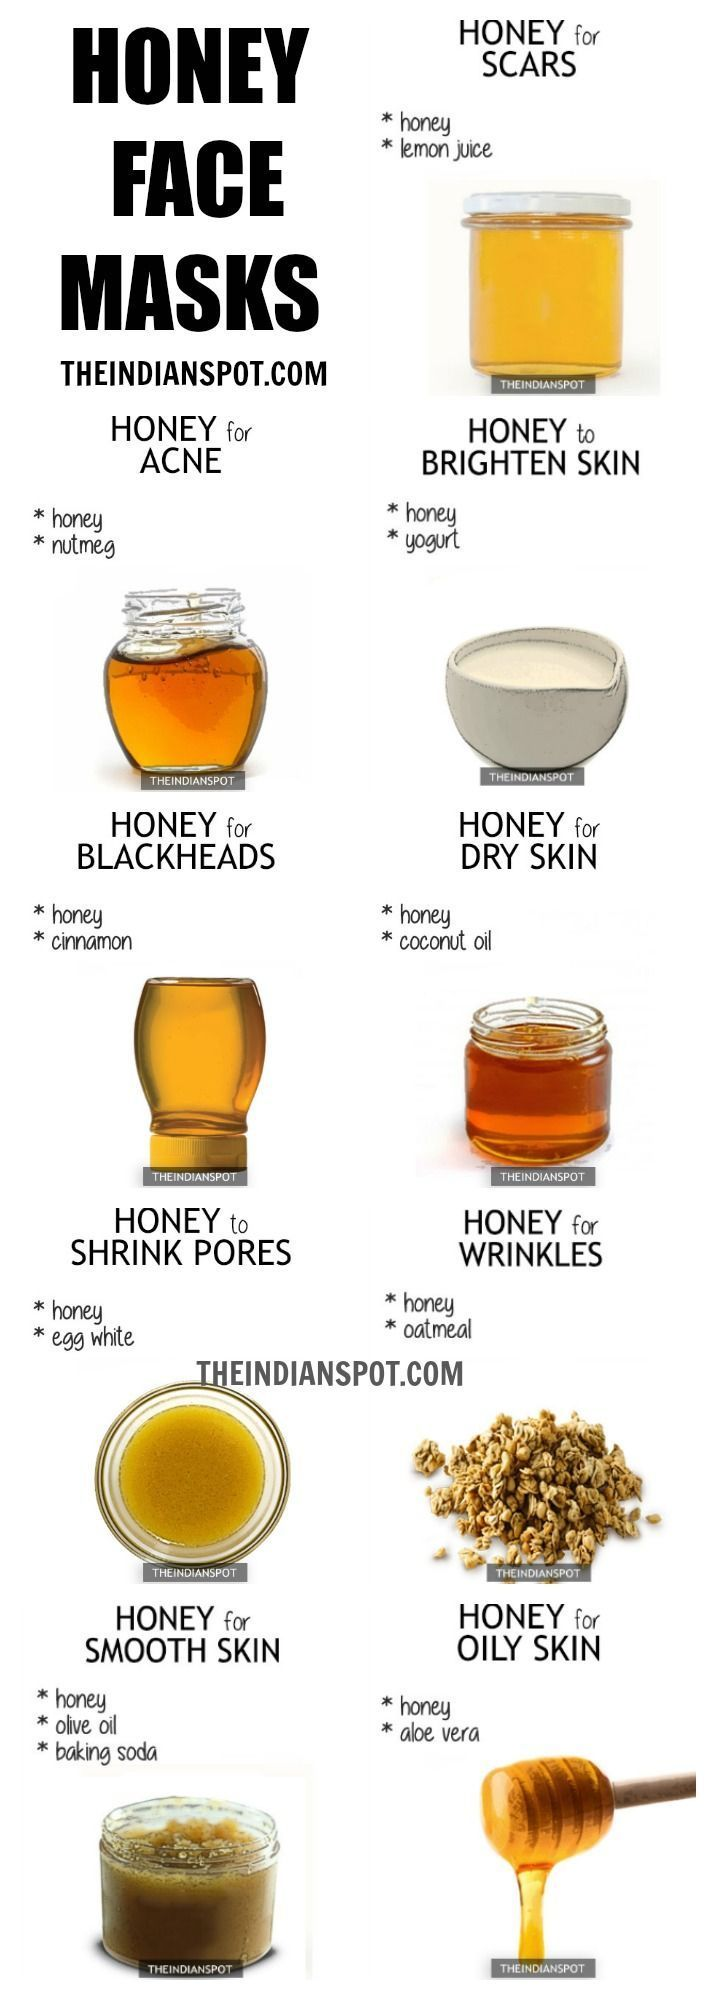 Use honey for smooth skin, for oily skin, and blackheads.  Skincare tips using honey for all skin types.